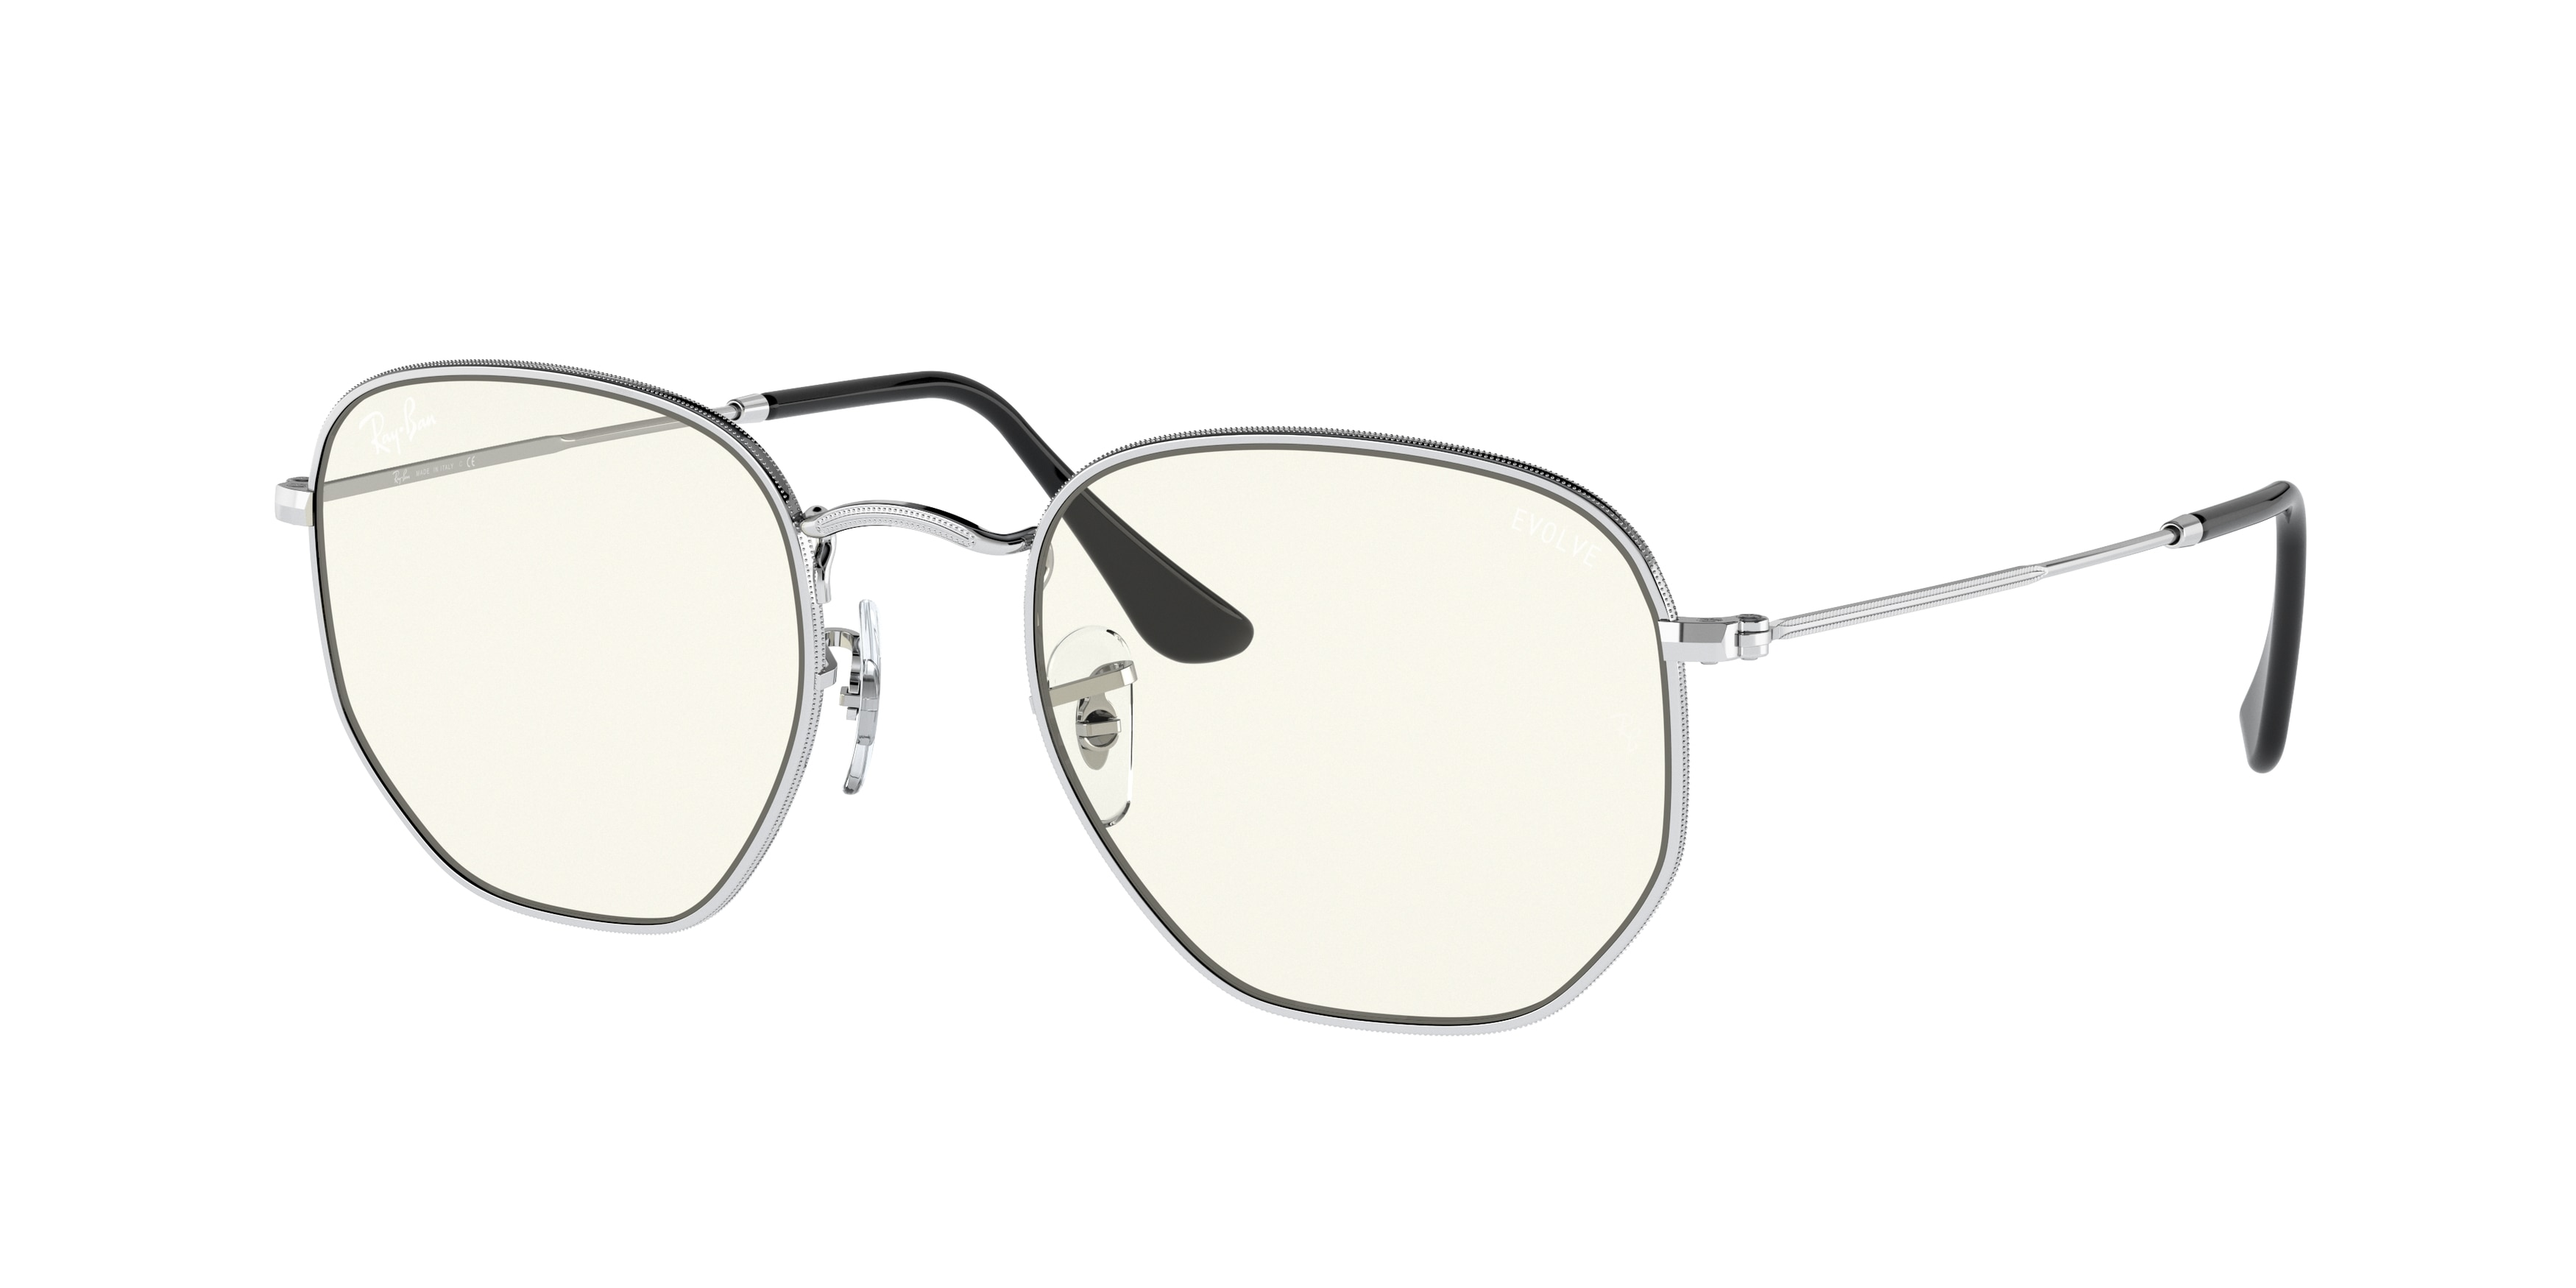 RAY BAN 0RB3548 003_BL 54